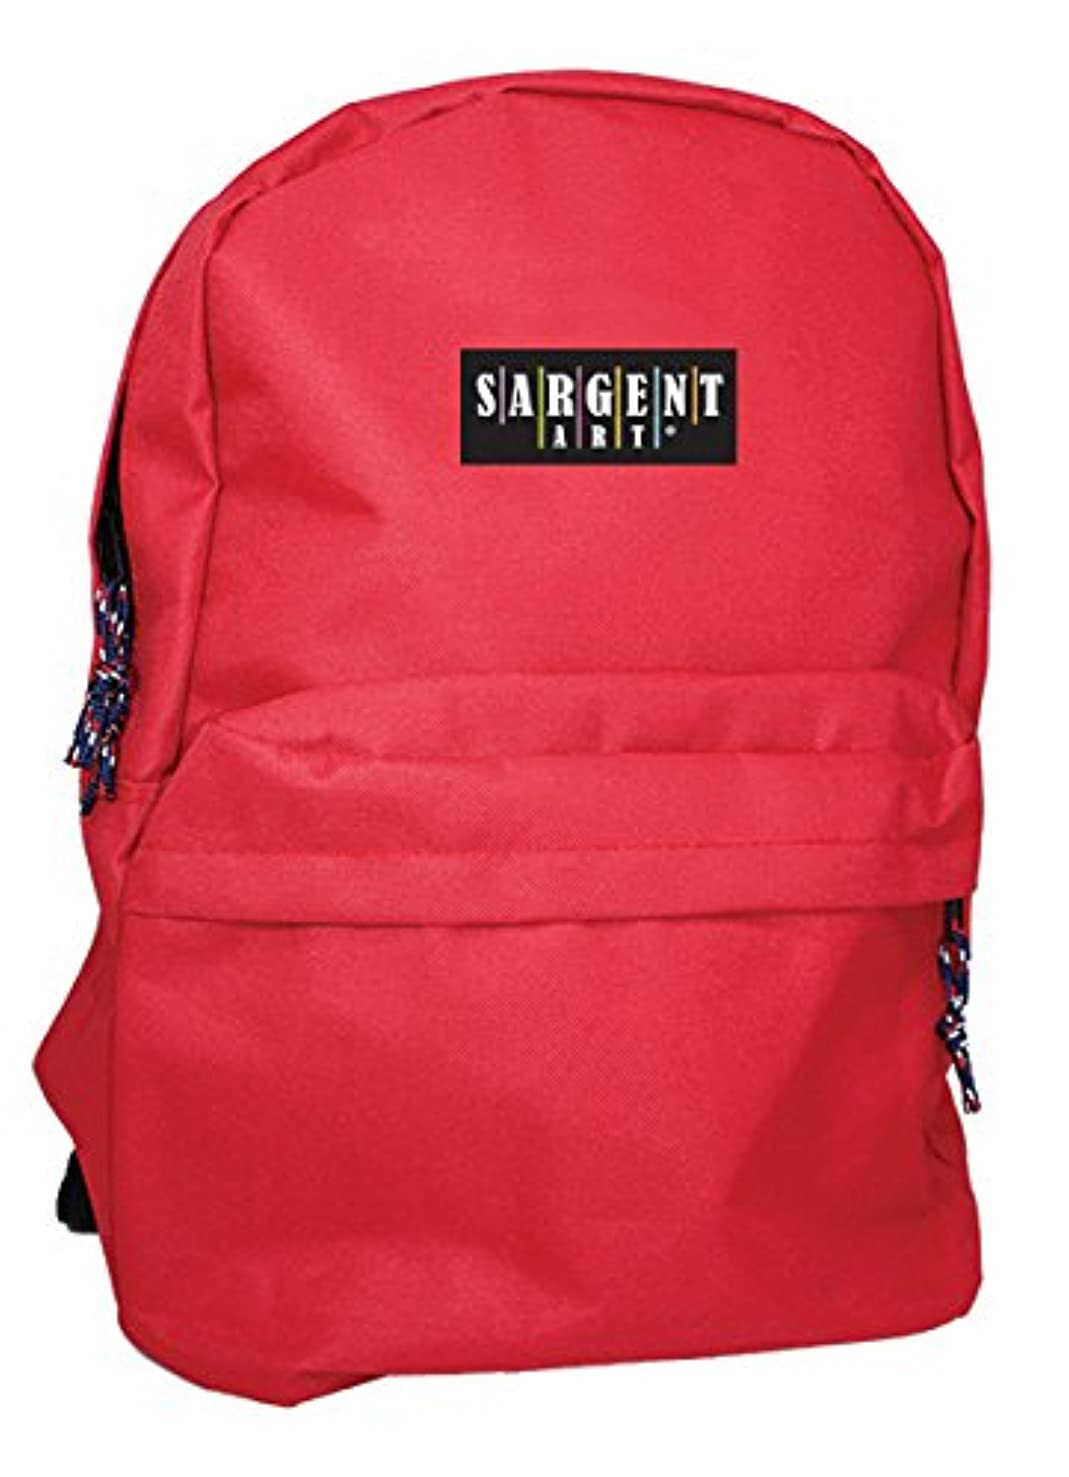 Sargent Art 98-5013 Economy Backpack, Red with Black Zippers/Trim